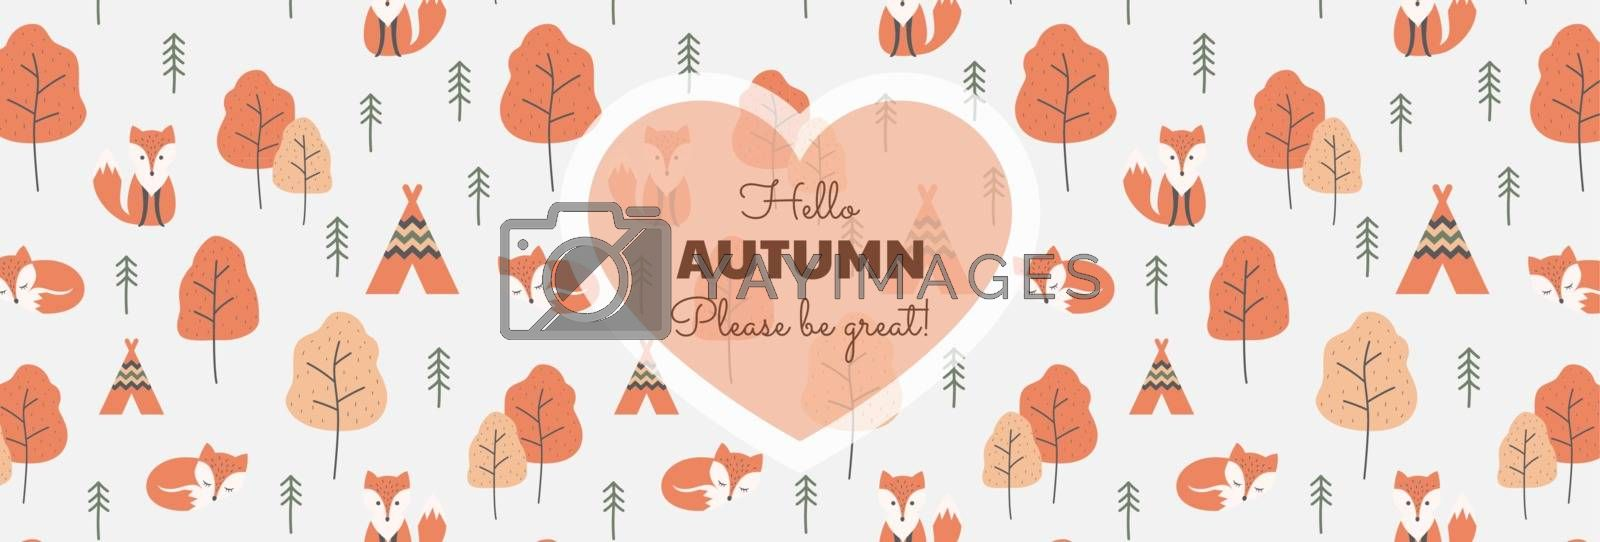 Text lettering with foxes and trees background, autumn colors vector